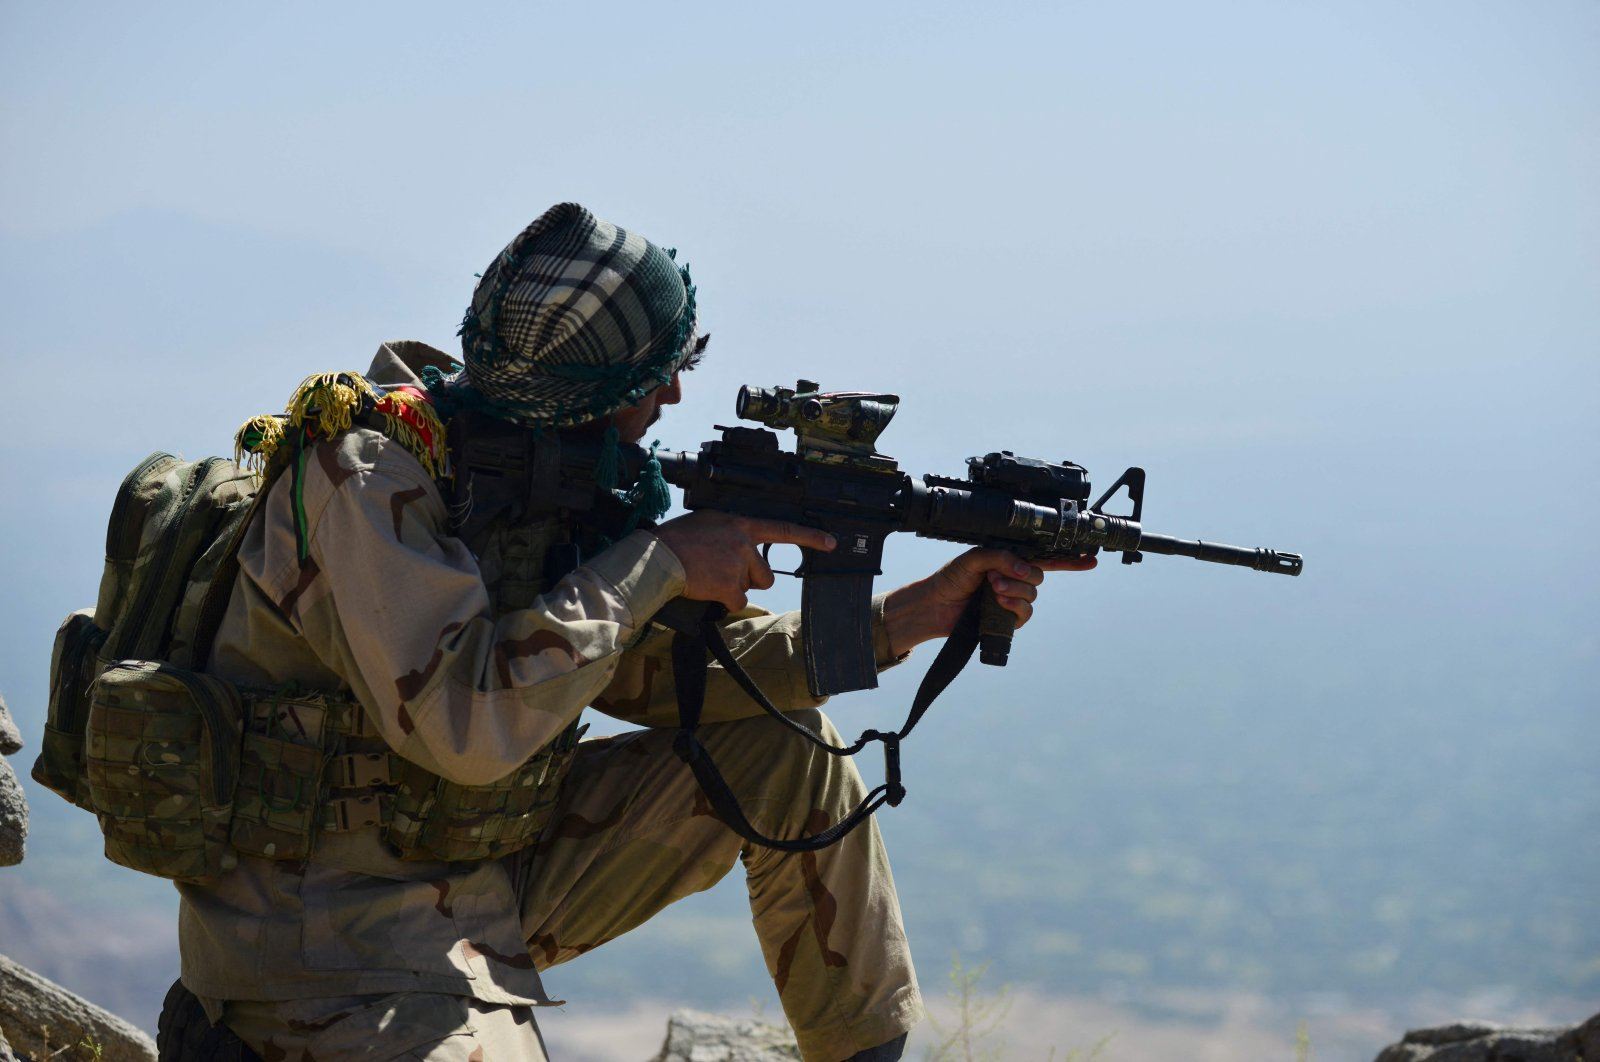 A member of the Afghan resistance movement and anti-Taliban uprising force takes up a postion during a patrol on a hilltop in the Darband area in Anaba district, Panjshir province, Afghanistan, Sept. 1, 2021. (AFP Photo)